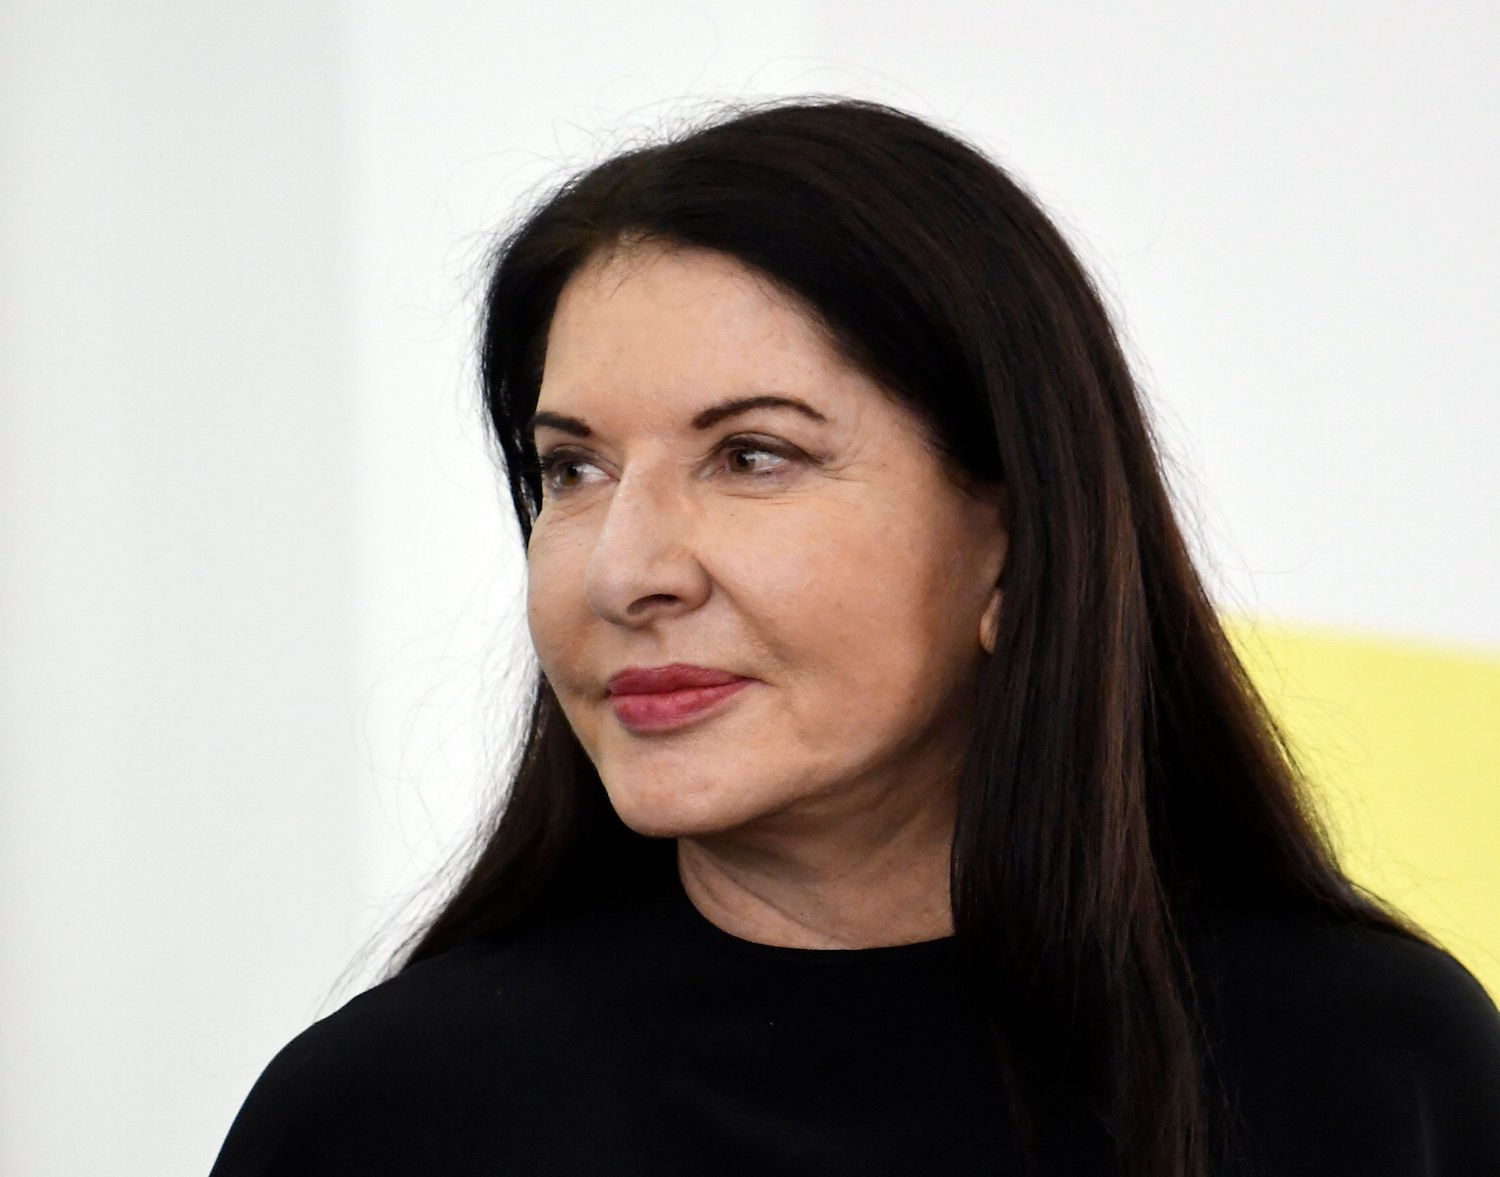 Marina Abramović's Nude Performance Piece 'Imponderabilia' Goes to London in 2020—Can Brits Take the Heat?